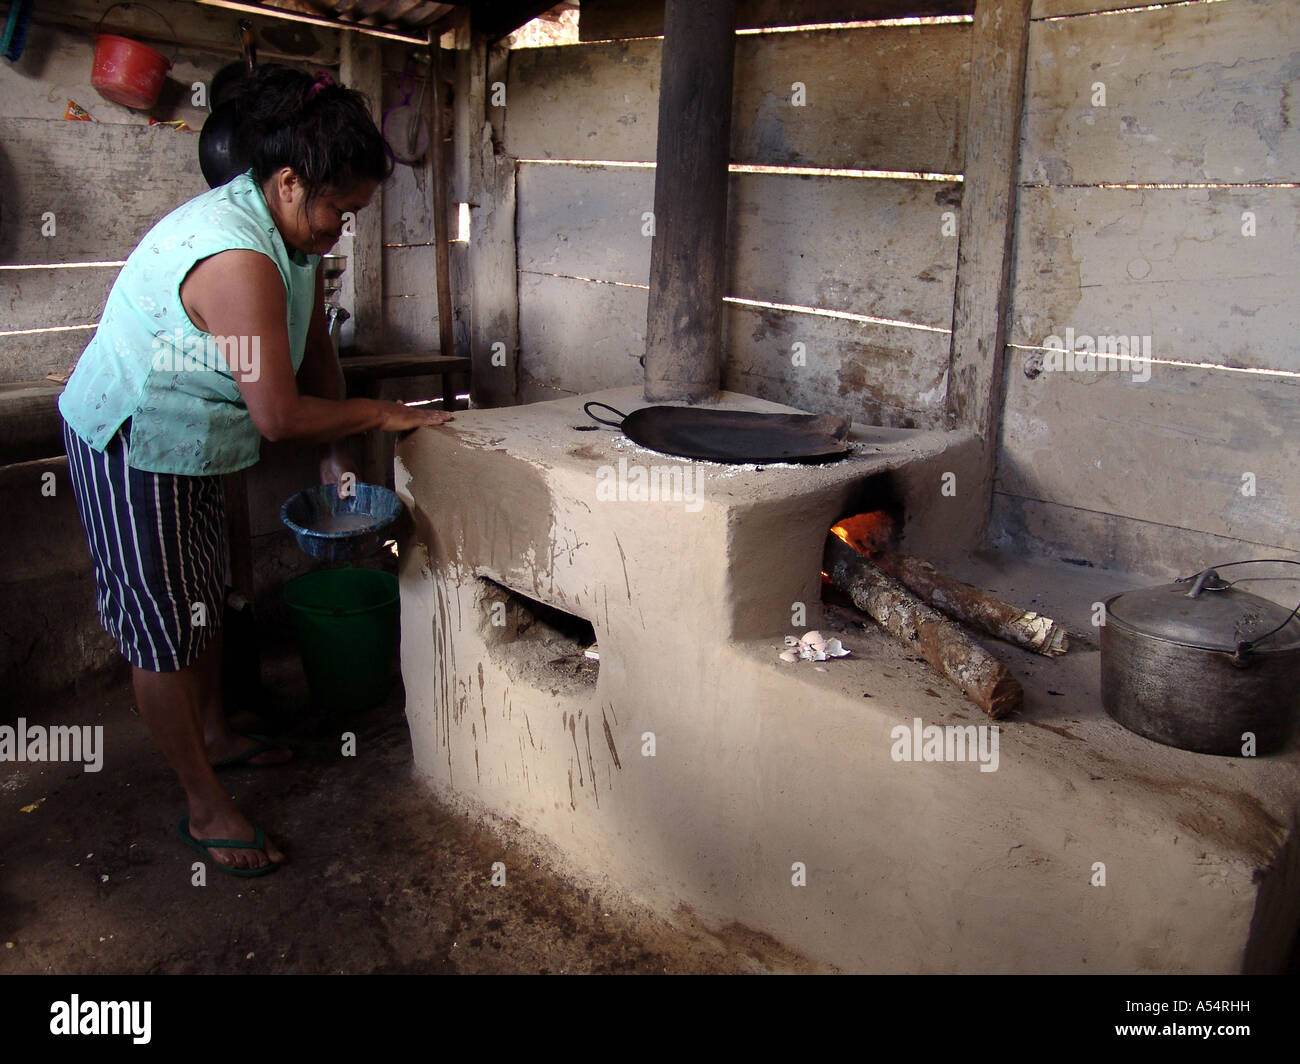 Painet ip1886 honduras woman cooking fuel efficient woodstove made mud  marcala country developing nation less economically - Painet Ip1886 Honduras Woman Cooking Fuel Efficient Woodstove Made